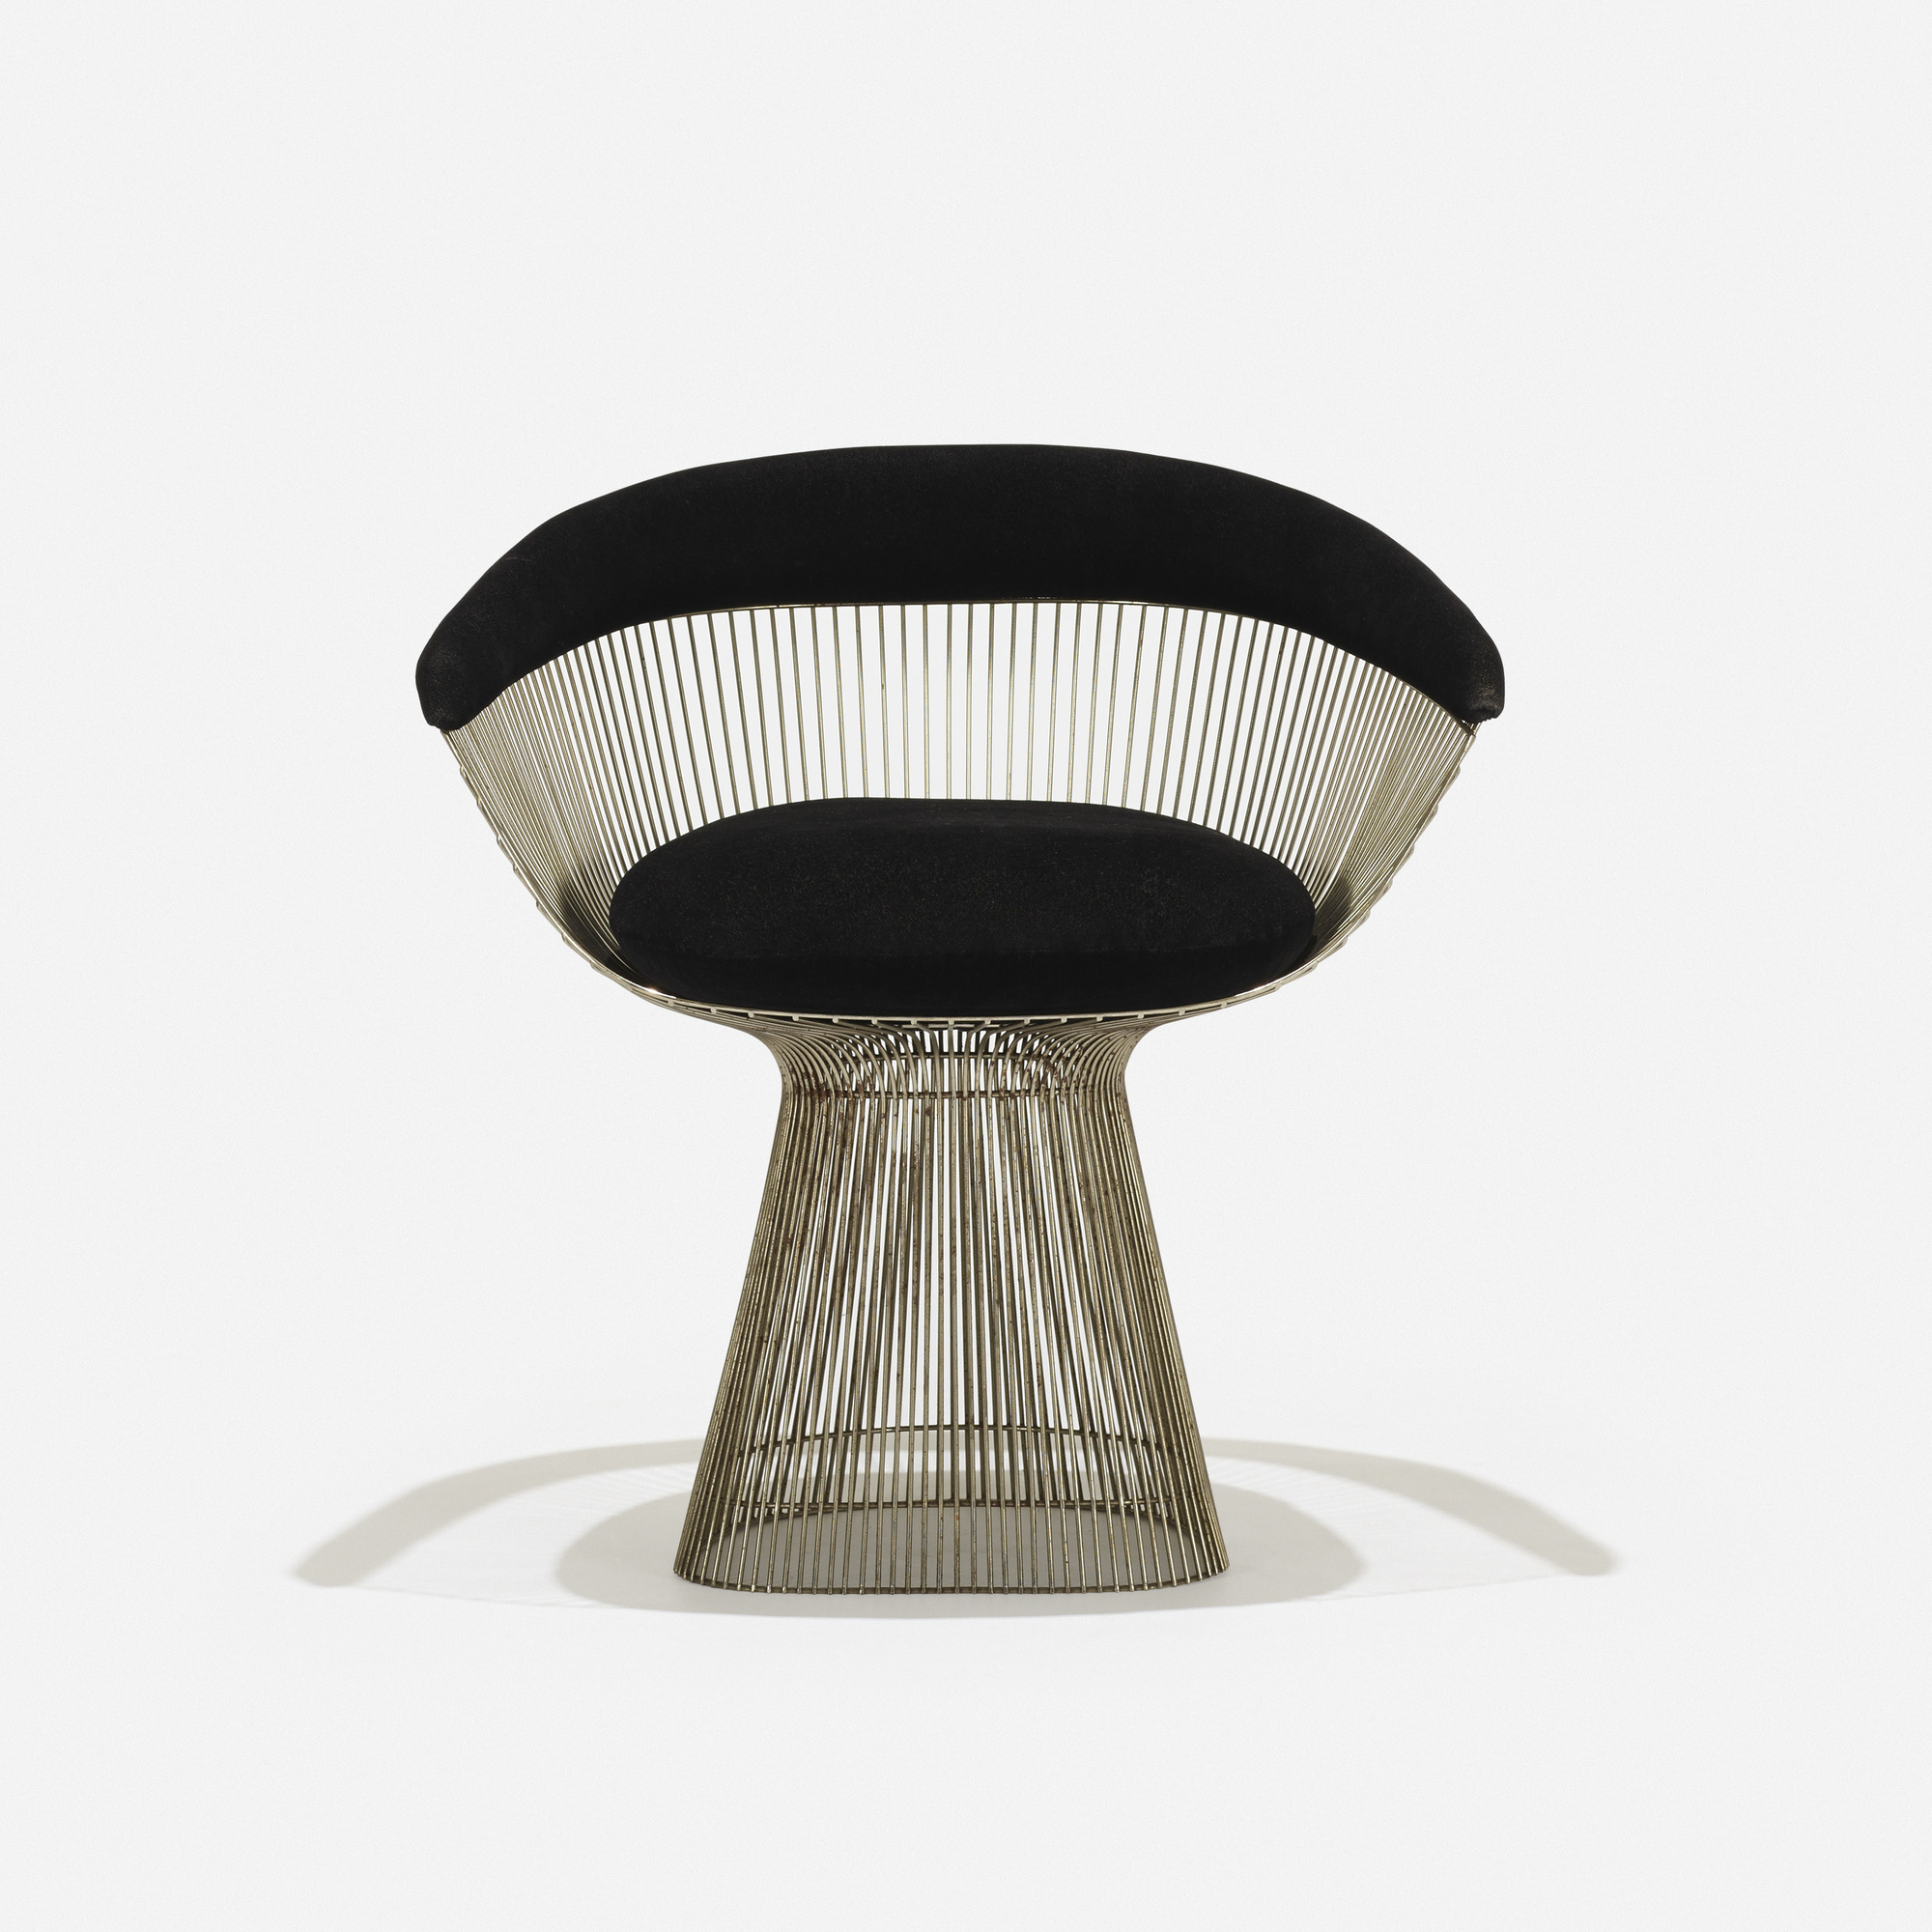 163: Warren Platner / Chair (1 Of 3)